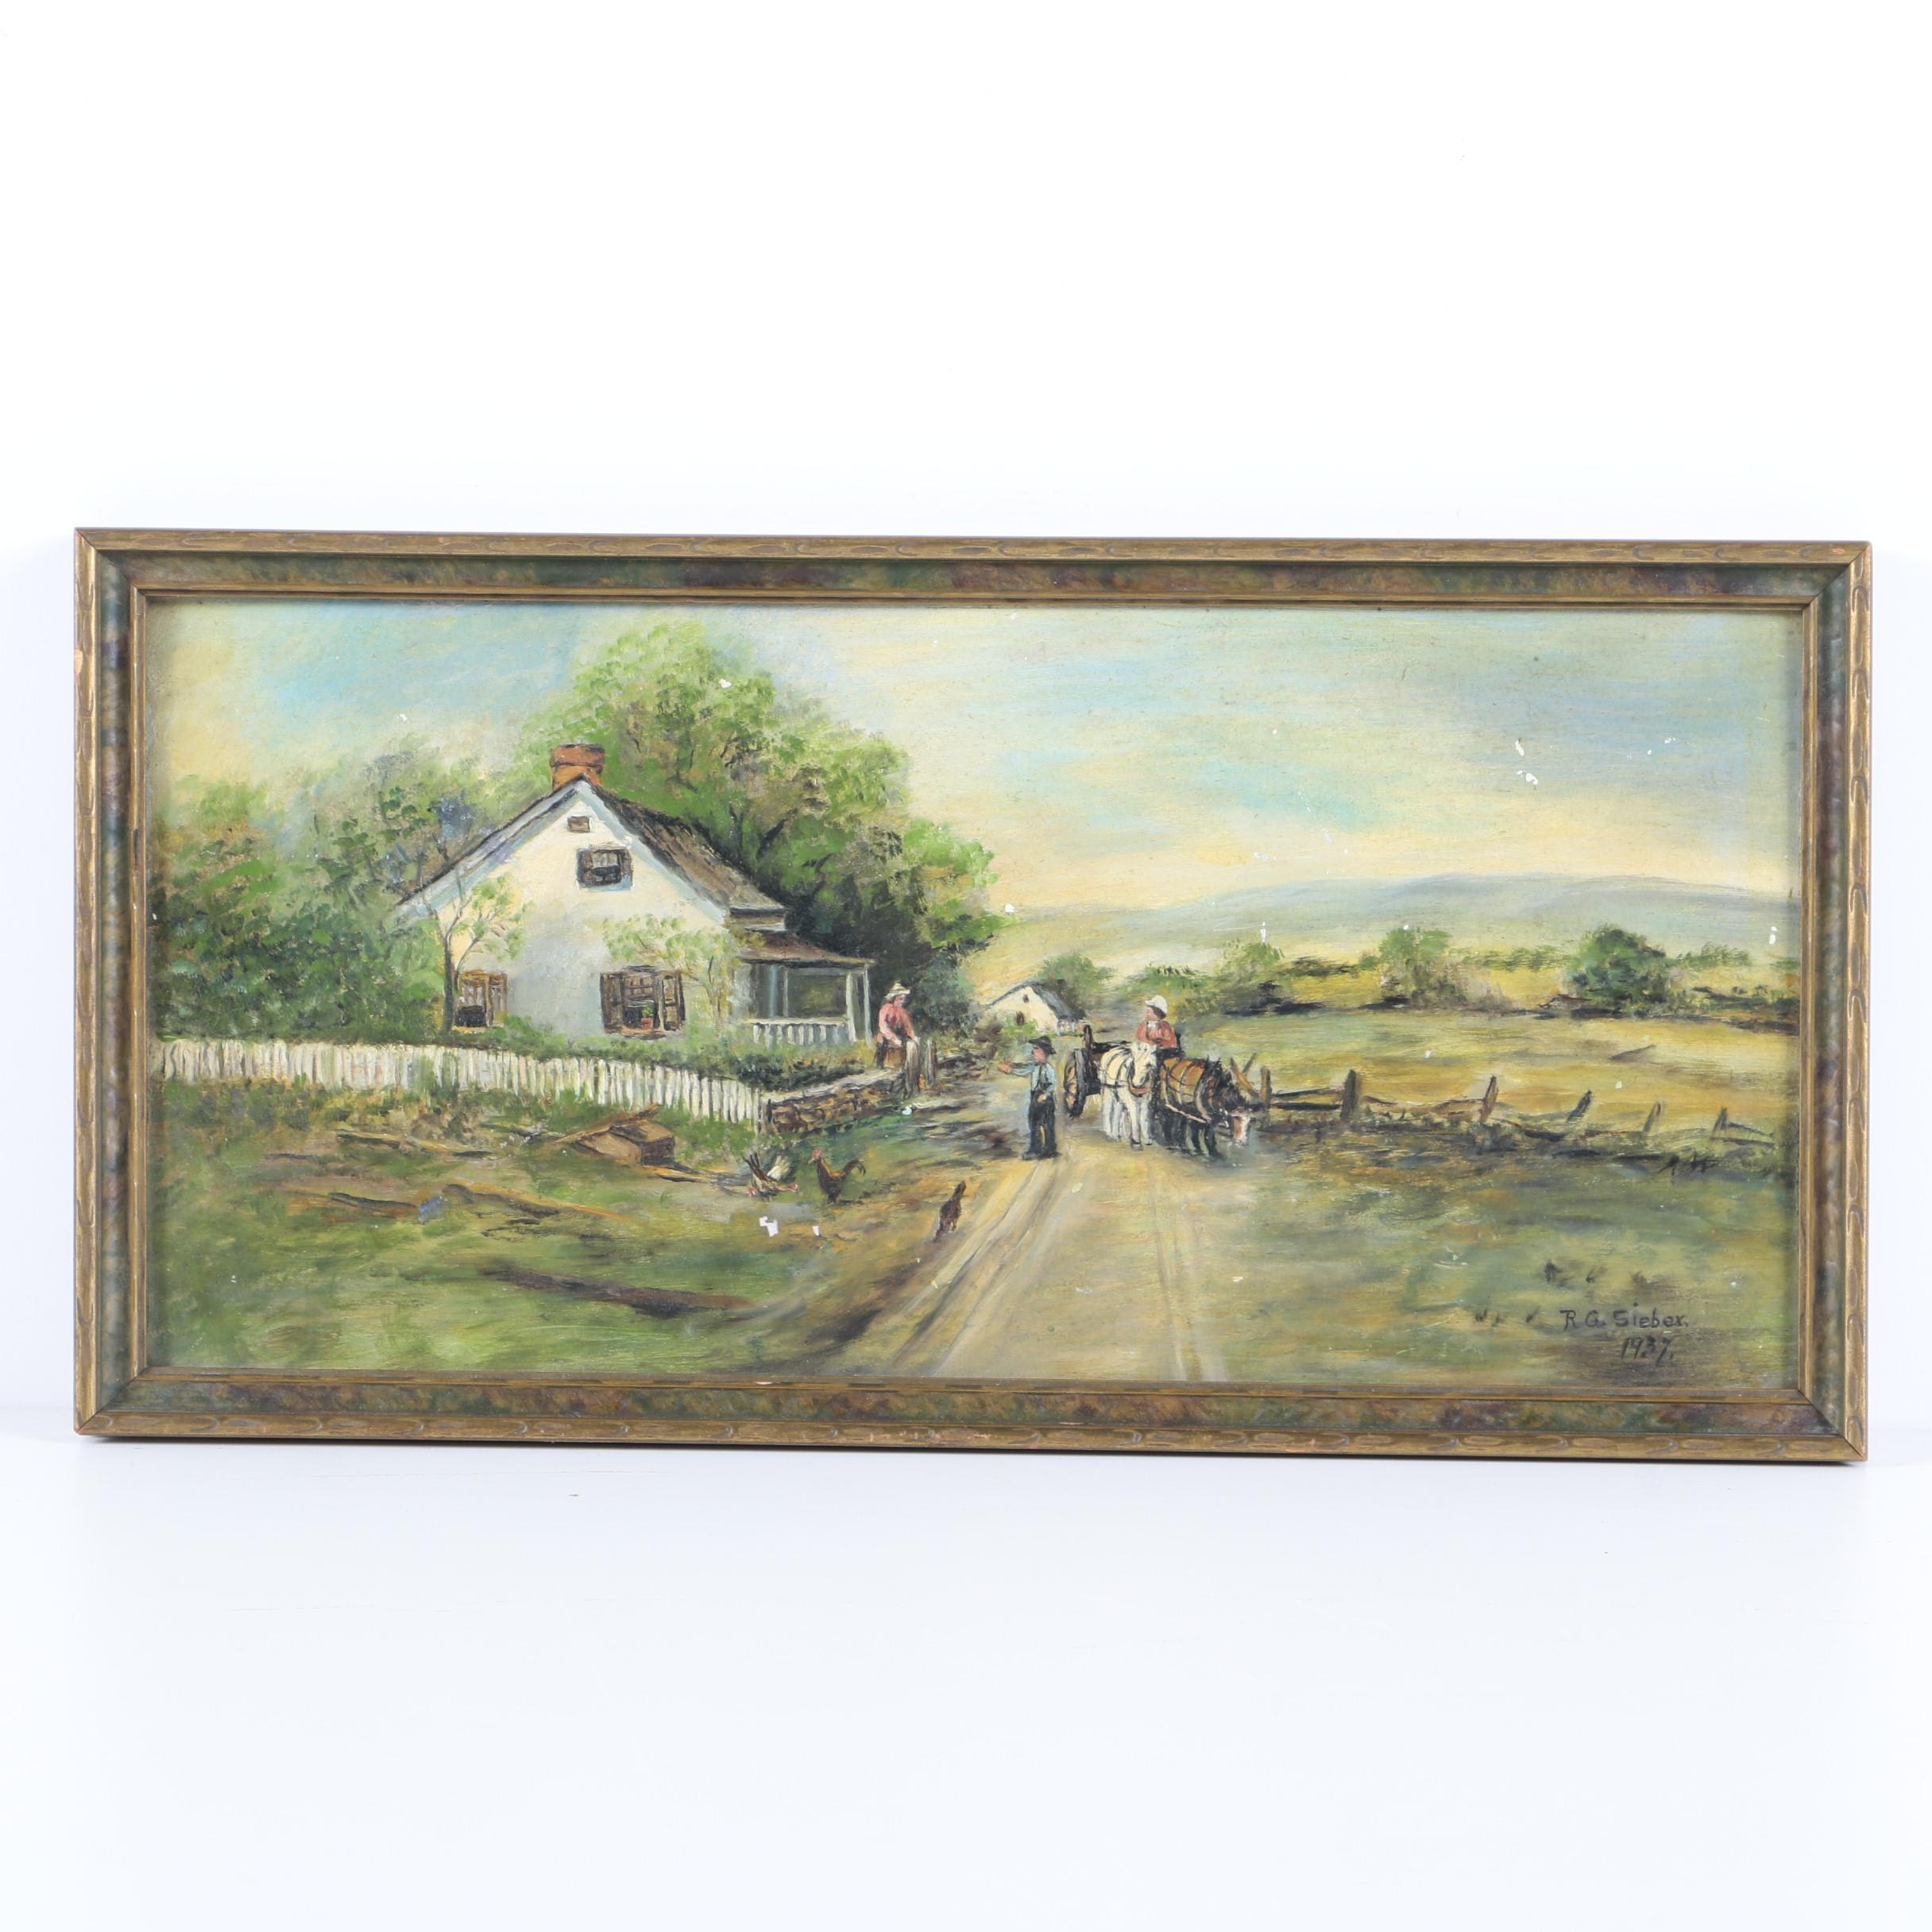 1937 R.G. Siebex Oil Painting of a Farm Scene